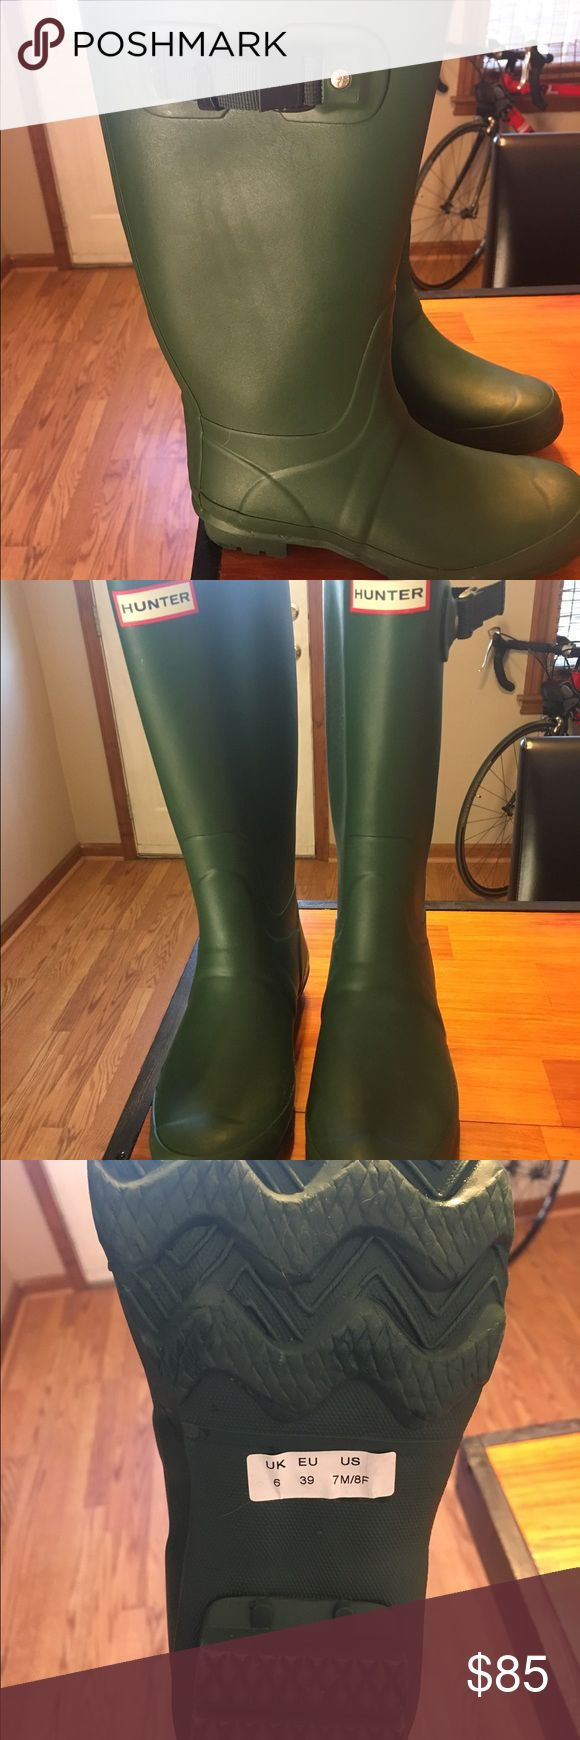 Hunter Huntress Boot 8 Green size 8 Hunter Huntress Boots. These are  the wide calf alternative to the Original Hunter Boots. Calf circumference is 16 3/4 with a 13 1/2 height. I bought these with the intention of keeping forever, but stumbled across a pair of country boots in the tack shop yesterday that fit like custom. So these beauties are for sale! I am a size 8.5 foot , sometimes 9, and the 8's fit perfectly. Just looking to get exactly what I paid for them! Worn a handful of times…